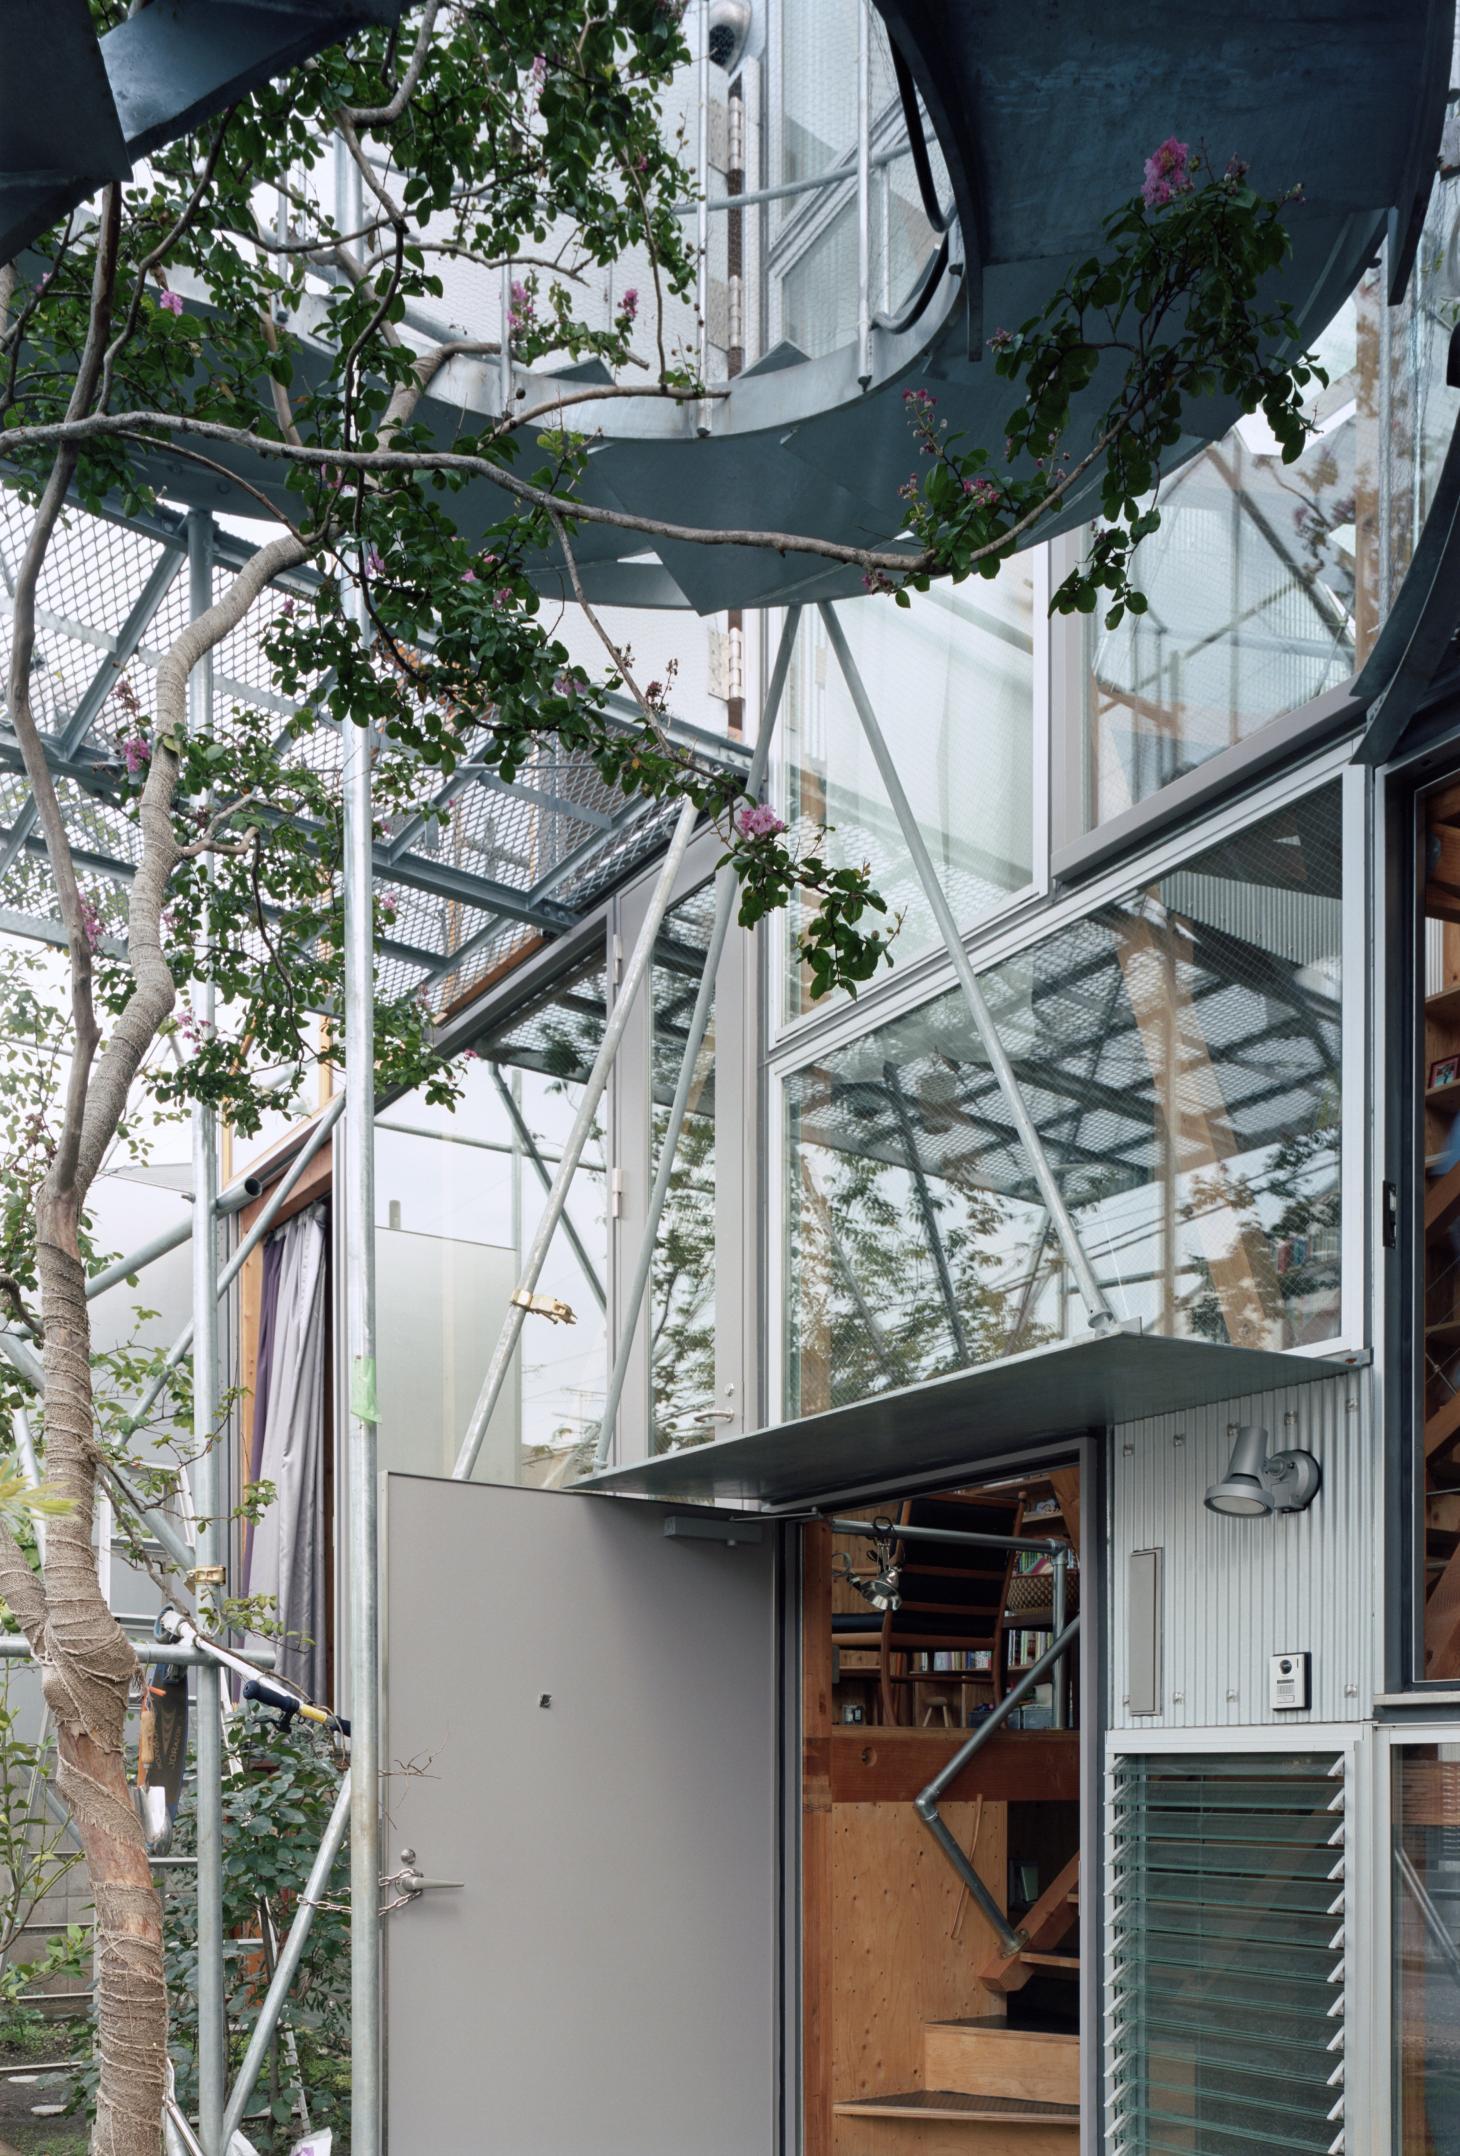 a rough and ready, tech-inspired approach at Daita2019, a Japanese house